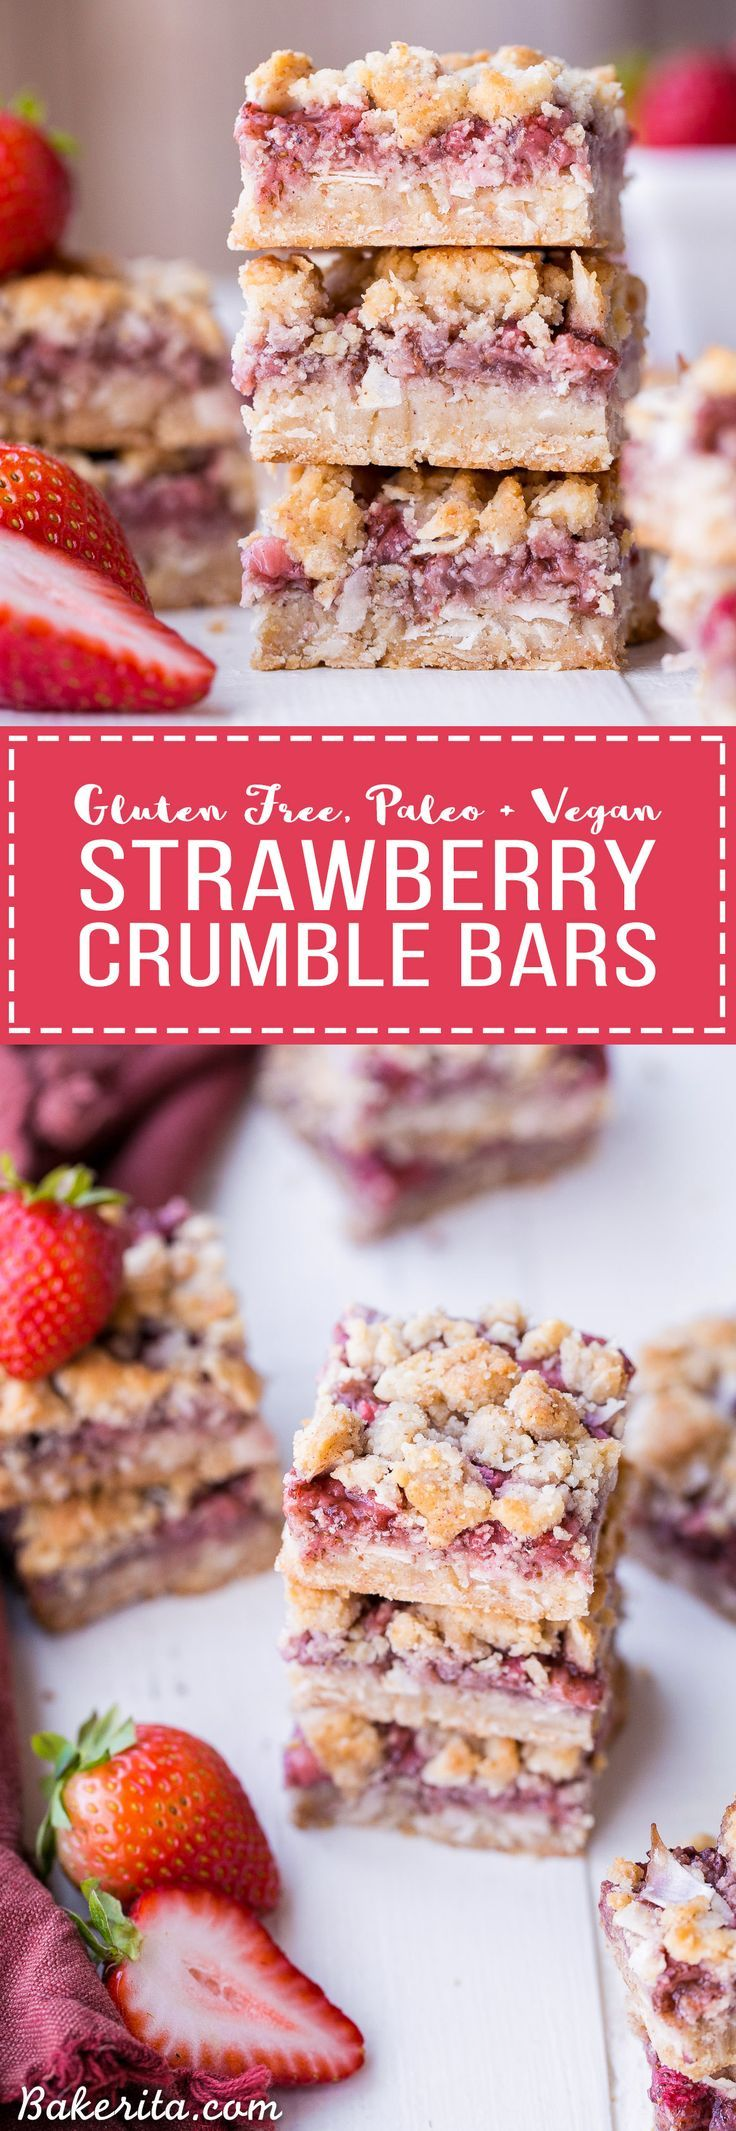 These Strawberry Crumble Bars have an irresistible crust and crumble topping that's full of texture - no oats necessary! These fruity bars are gluten-free, paleo, and vegan.